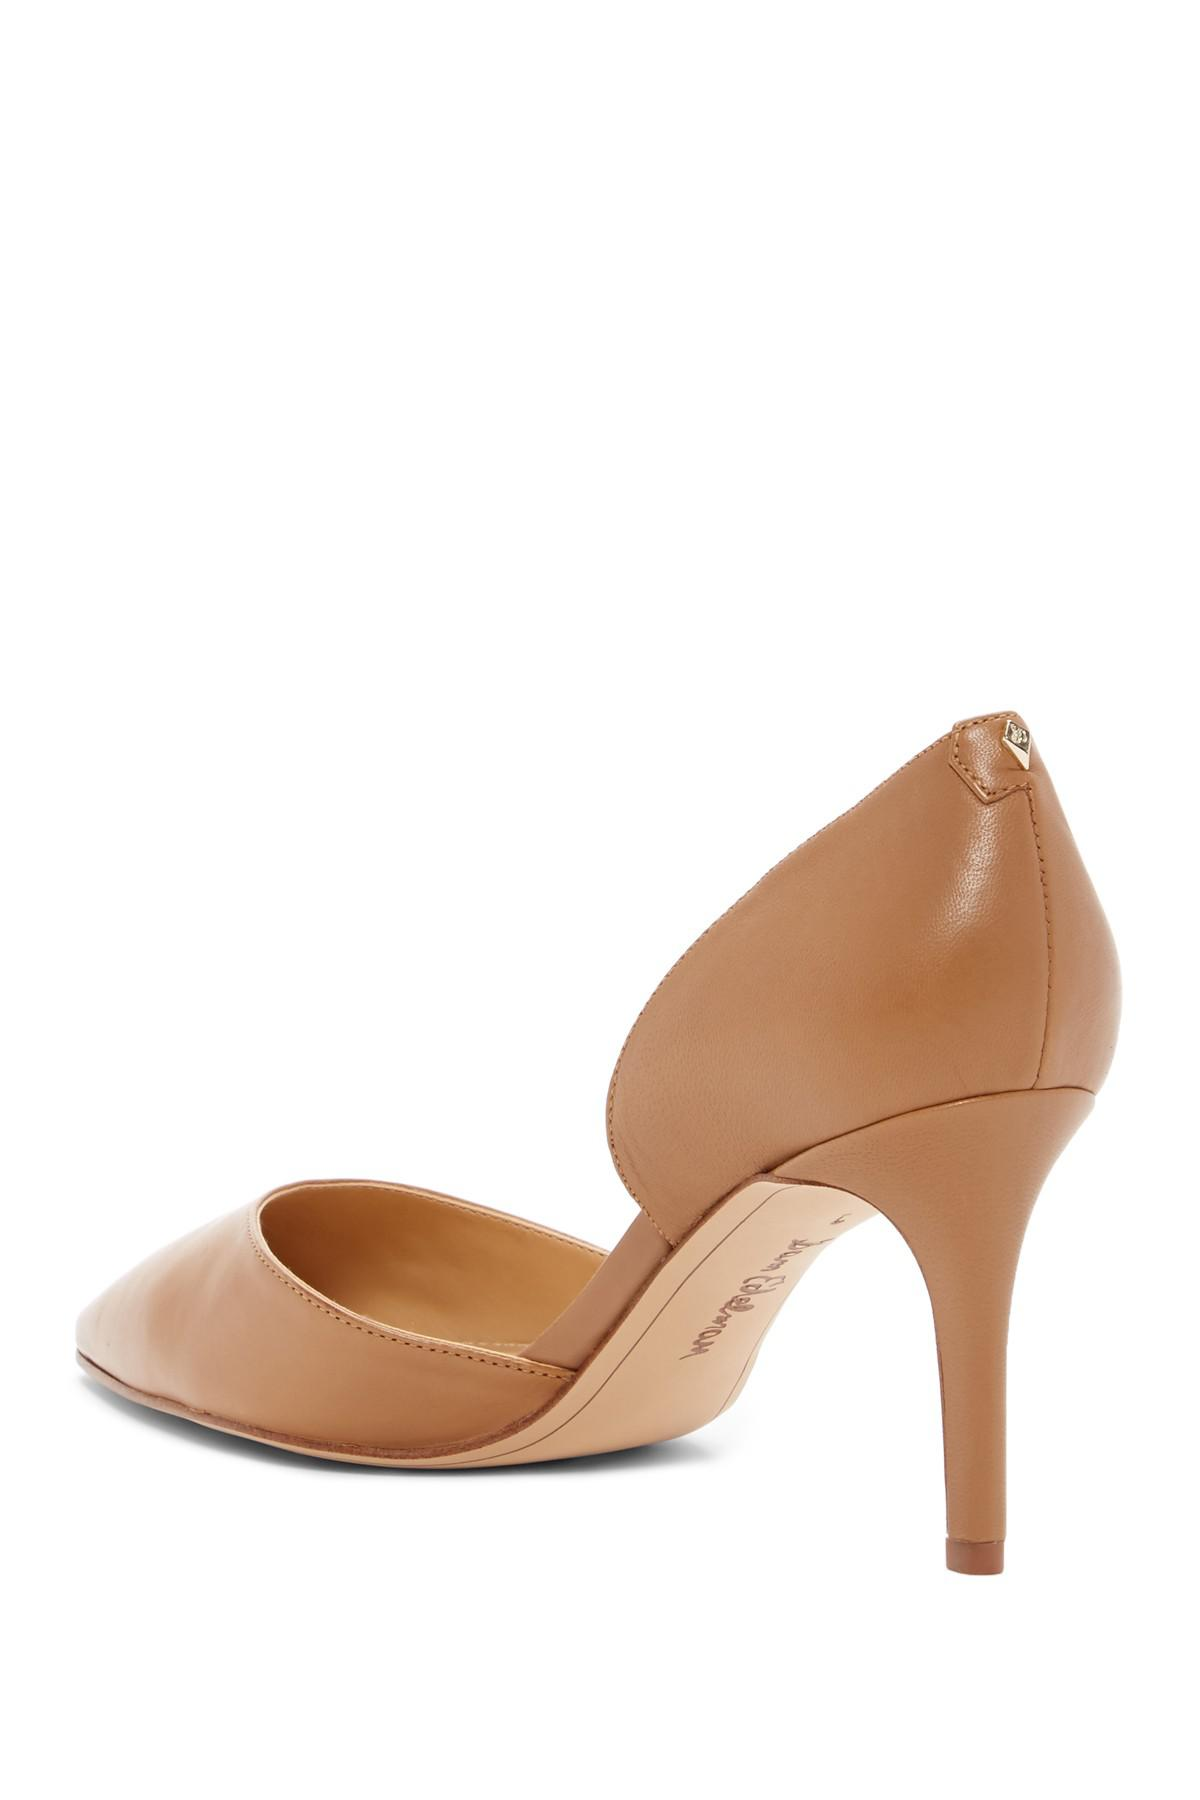 0e50ac75d2f2f6 Gallery. Previously sold at  Nordstrom Rack · Women s Pointed Toe Pumps ...